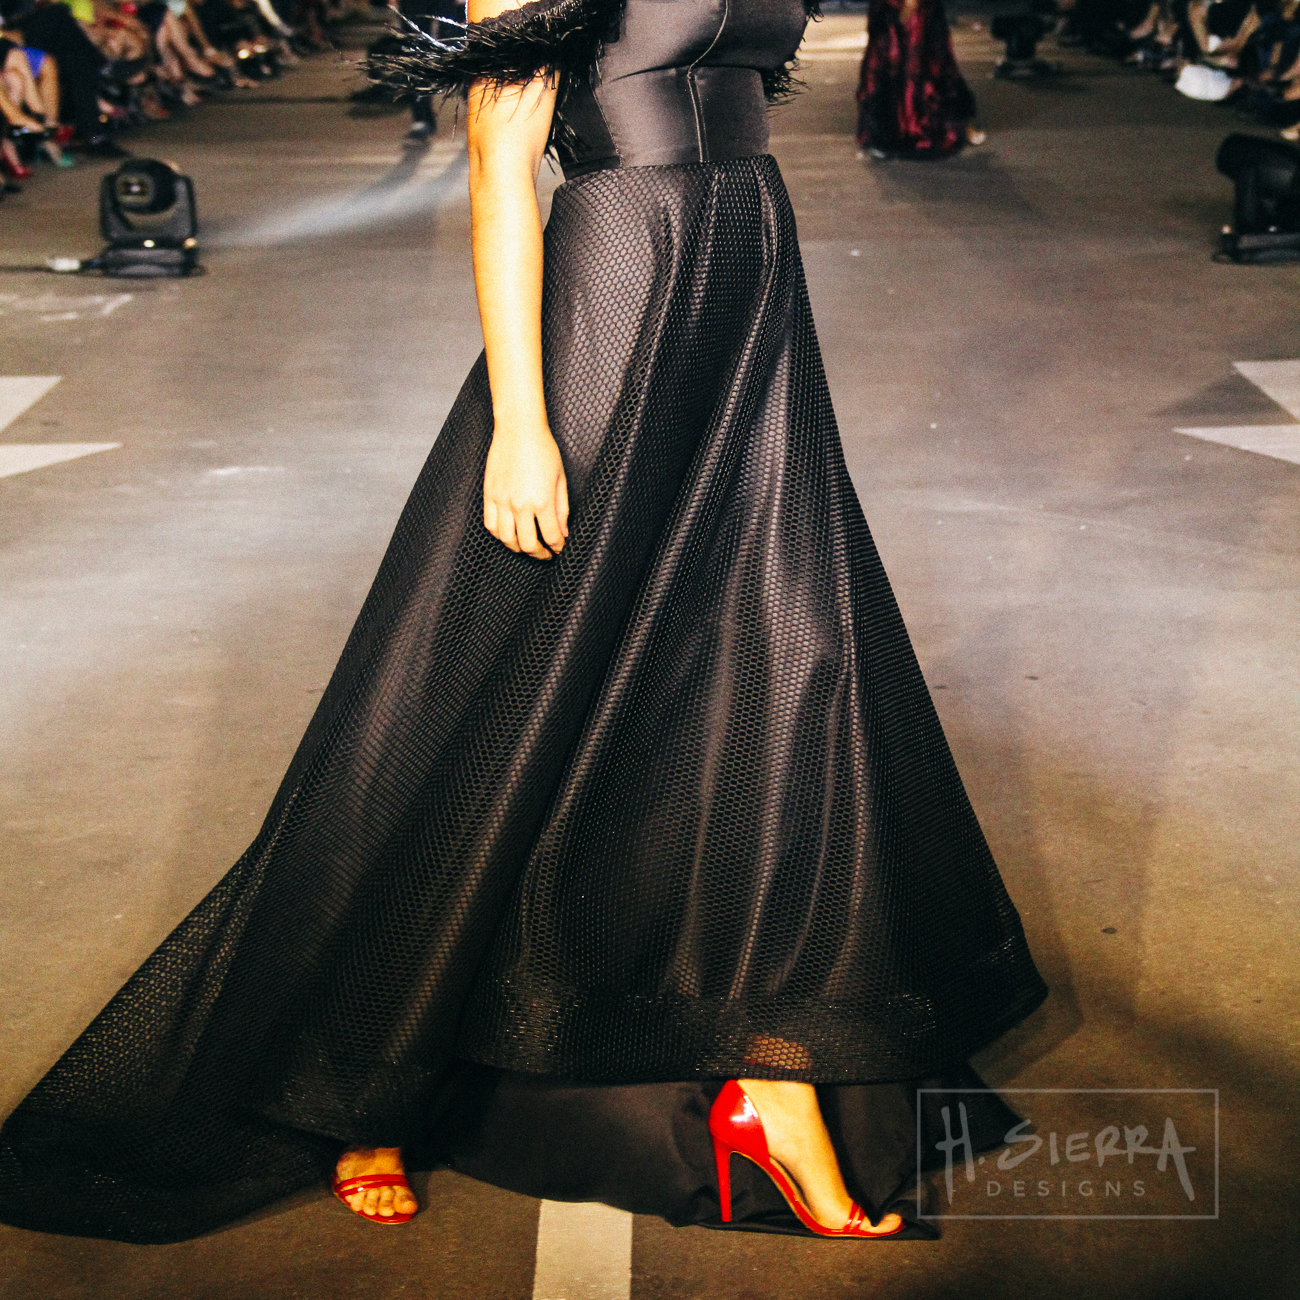 HSD_YOYOBARRIENTOS_RUNWAY-1-122.JPG